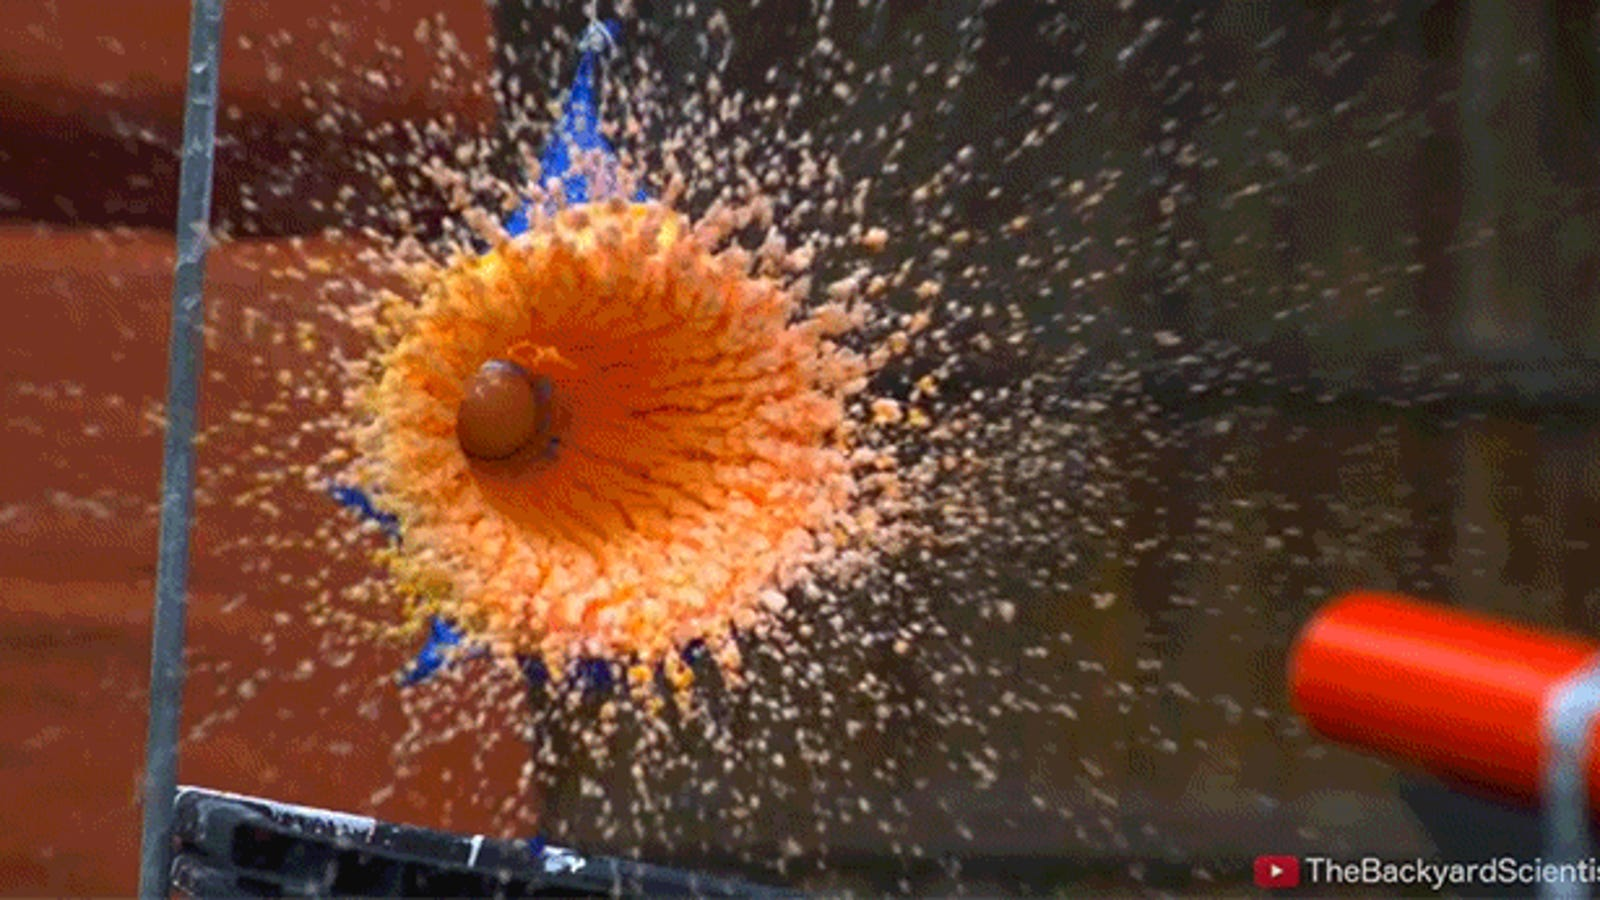 What Happens When You Shoot a Golf Ball at a Balloon Filled with Non-Newtonian Fluid?